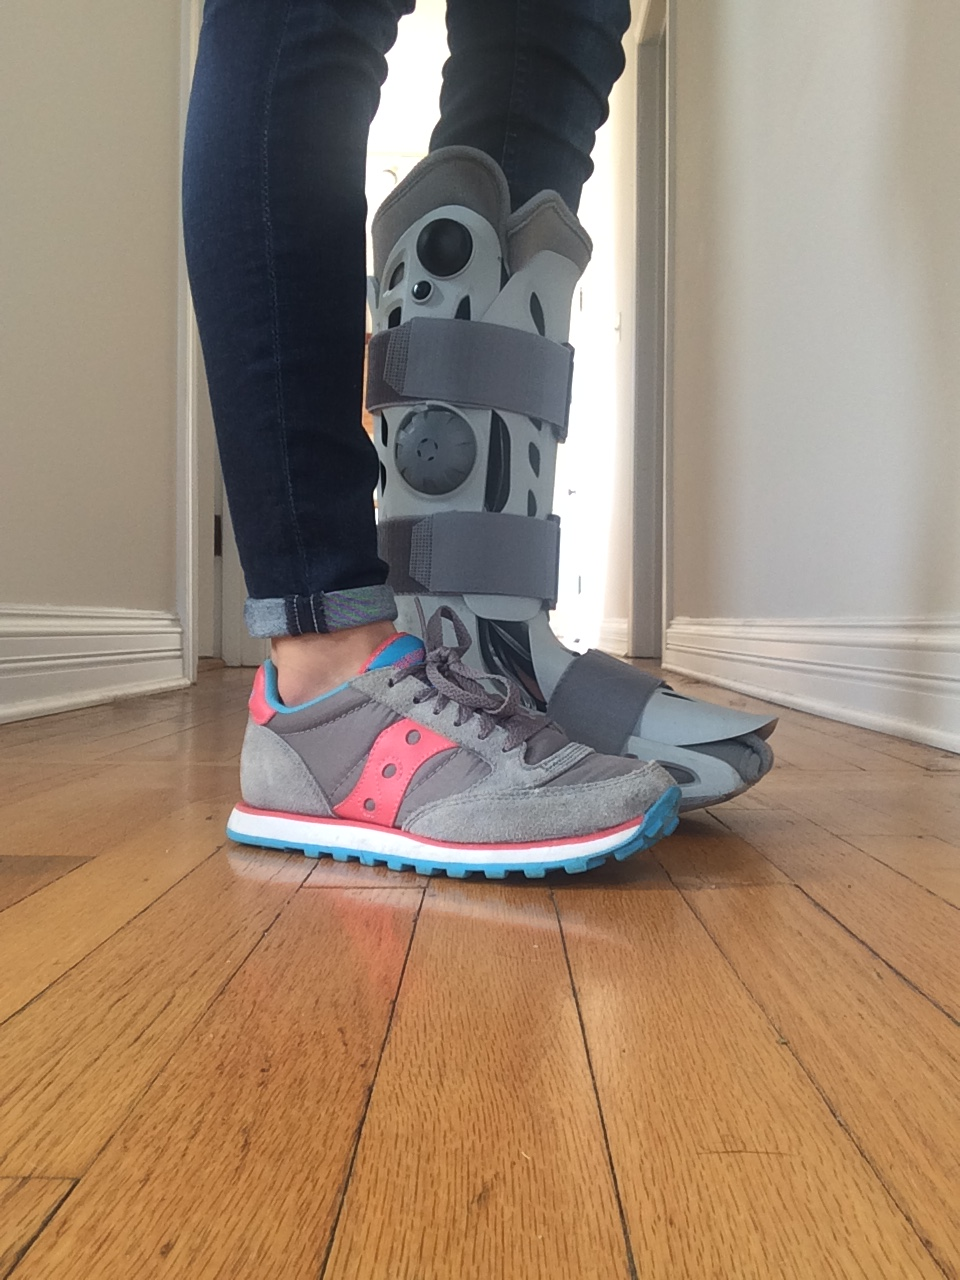 Recovering From a Stress Fracture: My Experience & A Guide